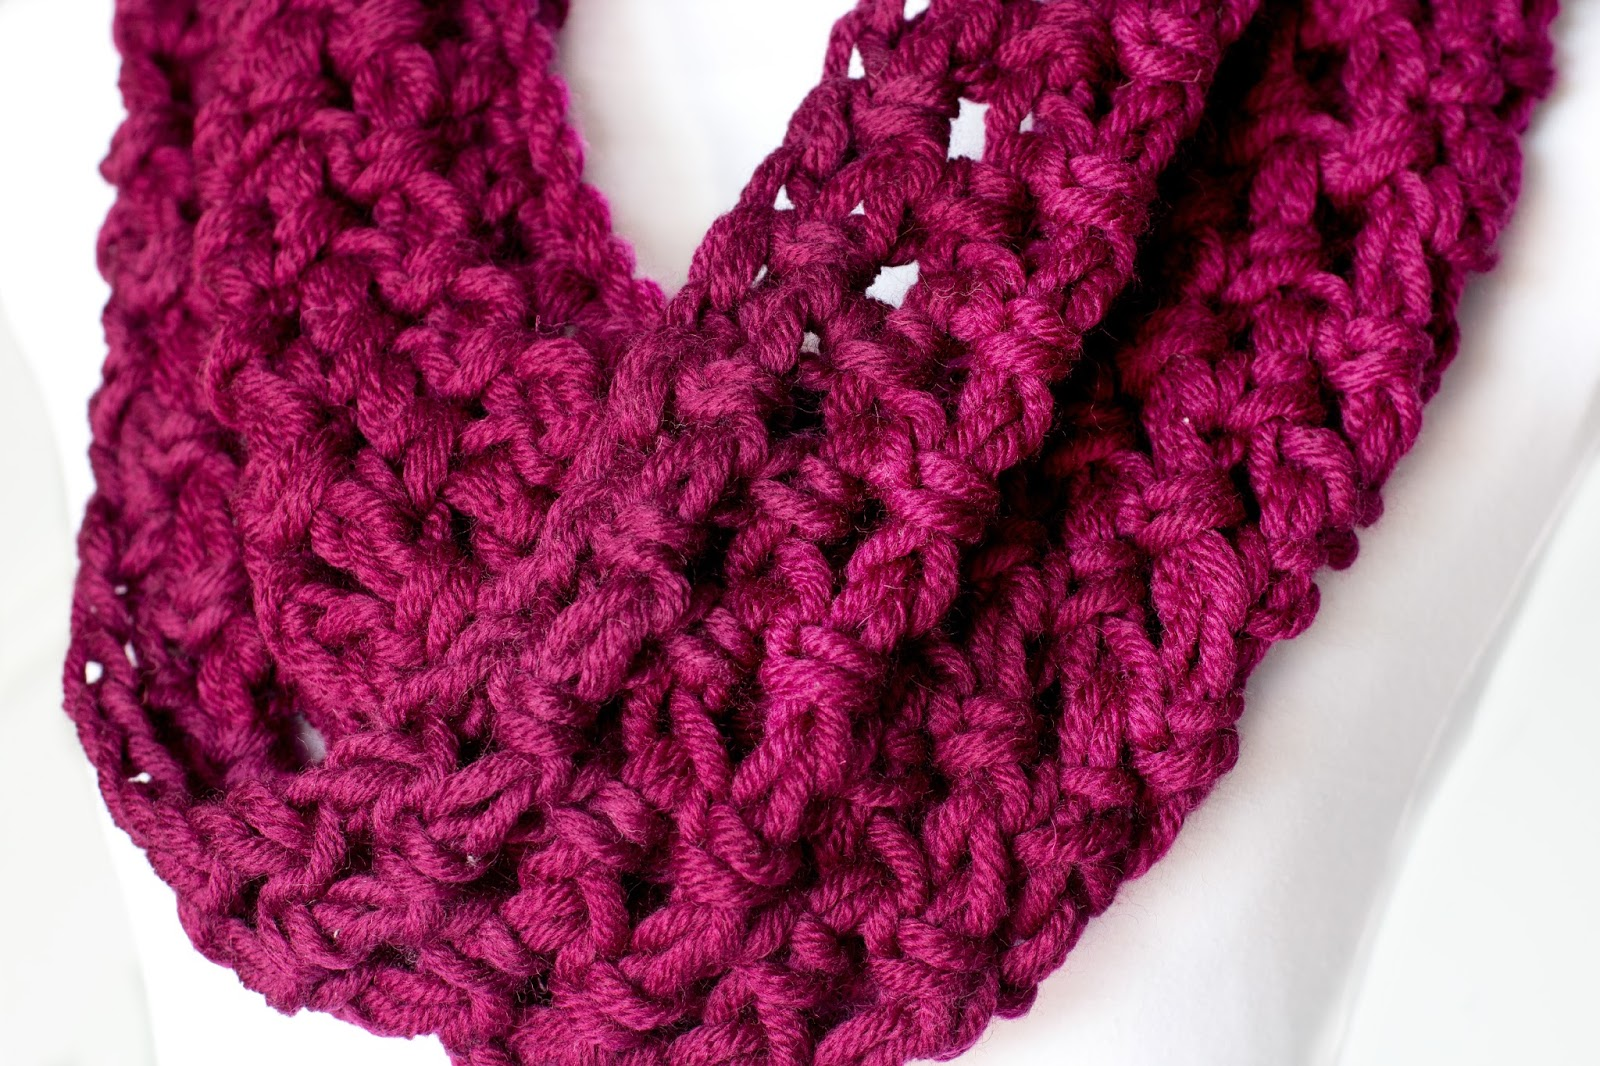 Free Crochet Scarf Patterns For Bulky Yarn : Hopeful Honey Craft, Crochet, Create: Basic Chunky Cowl ...